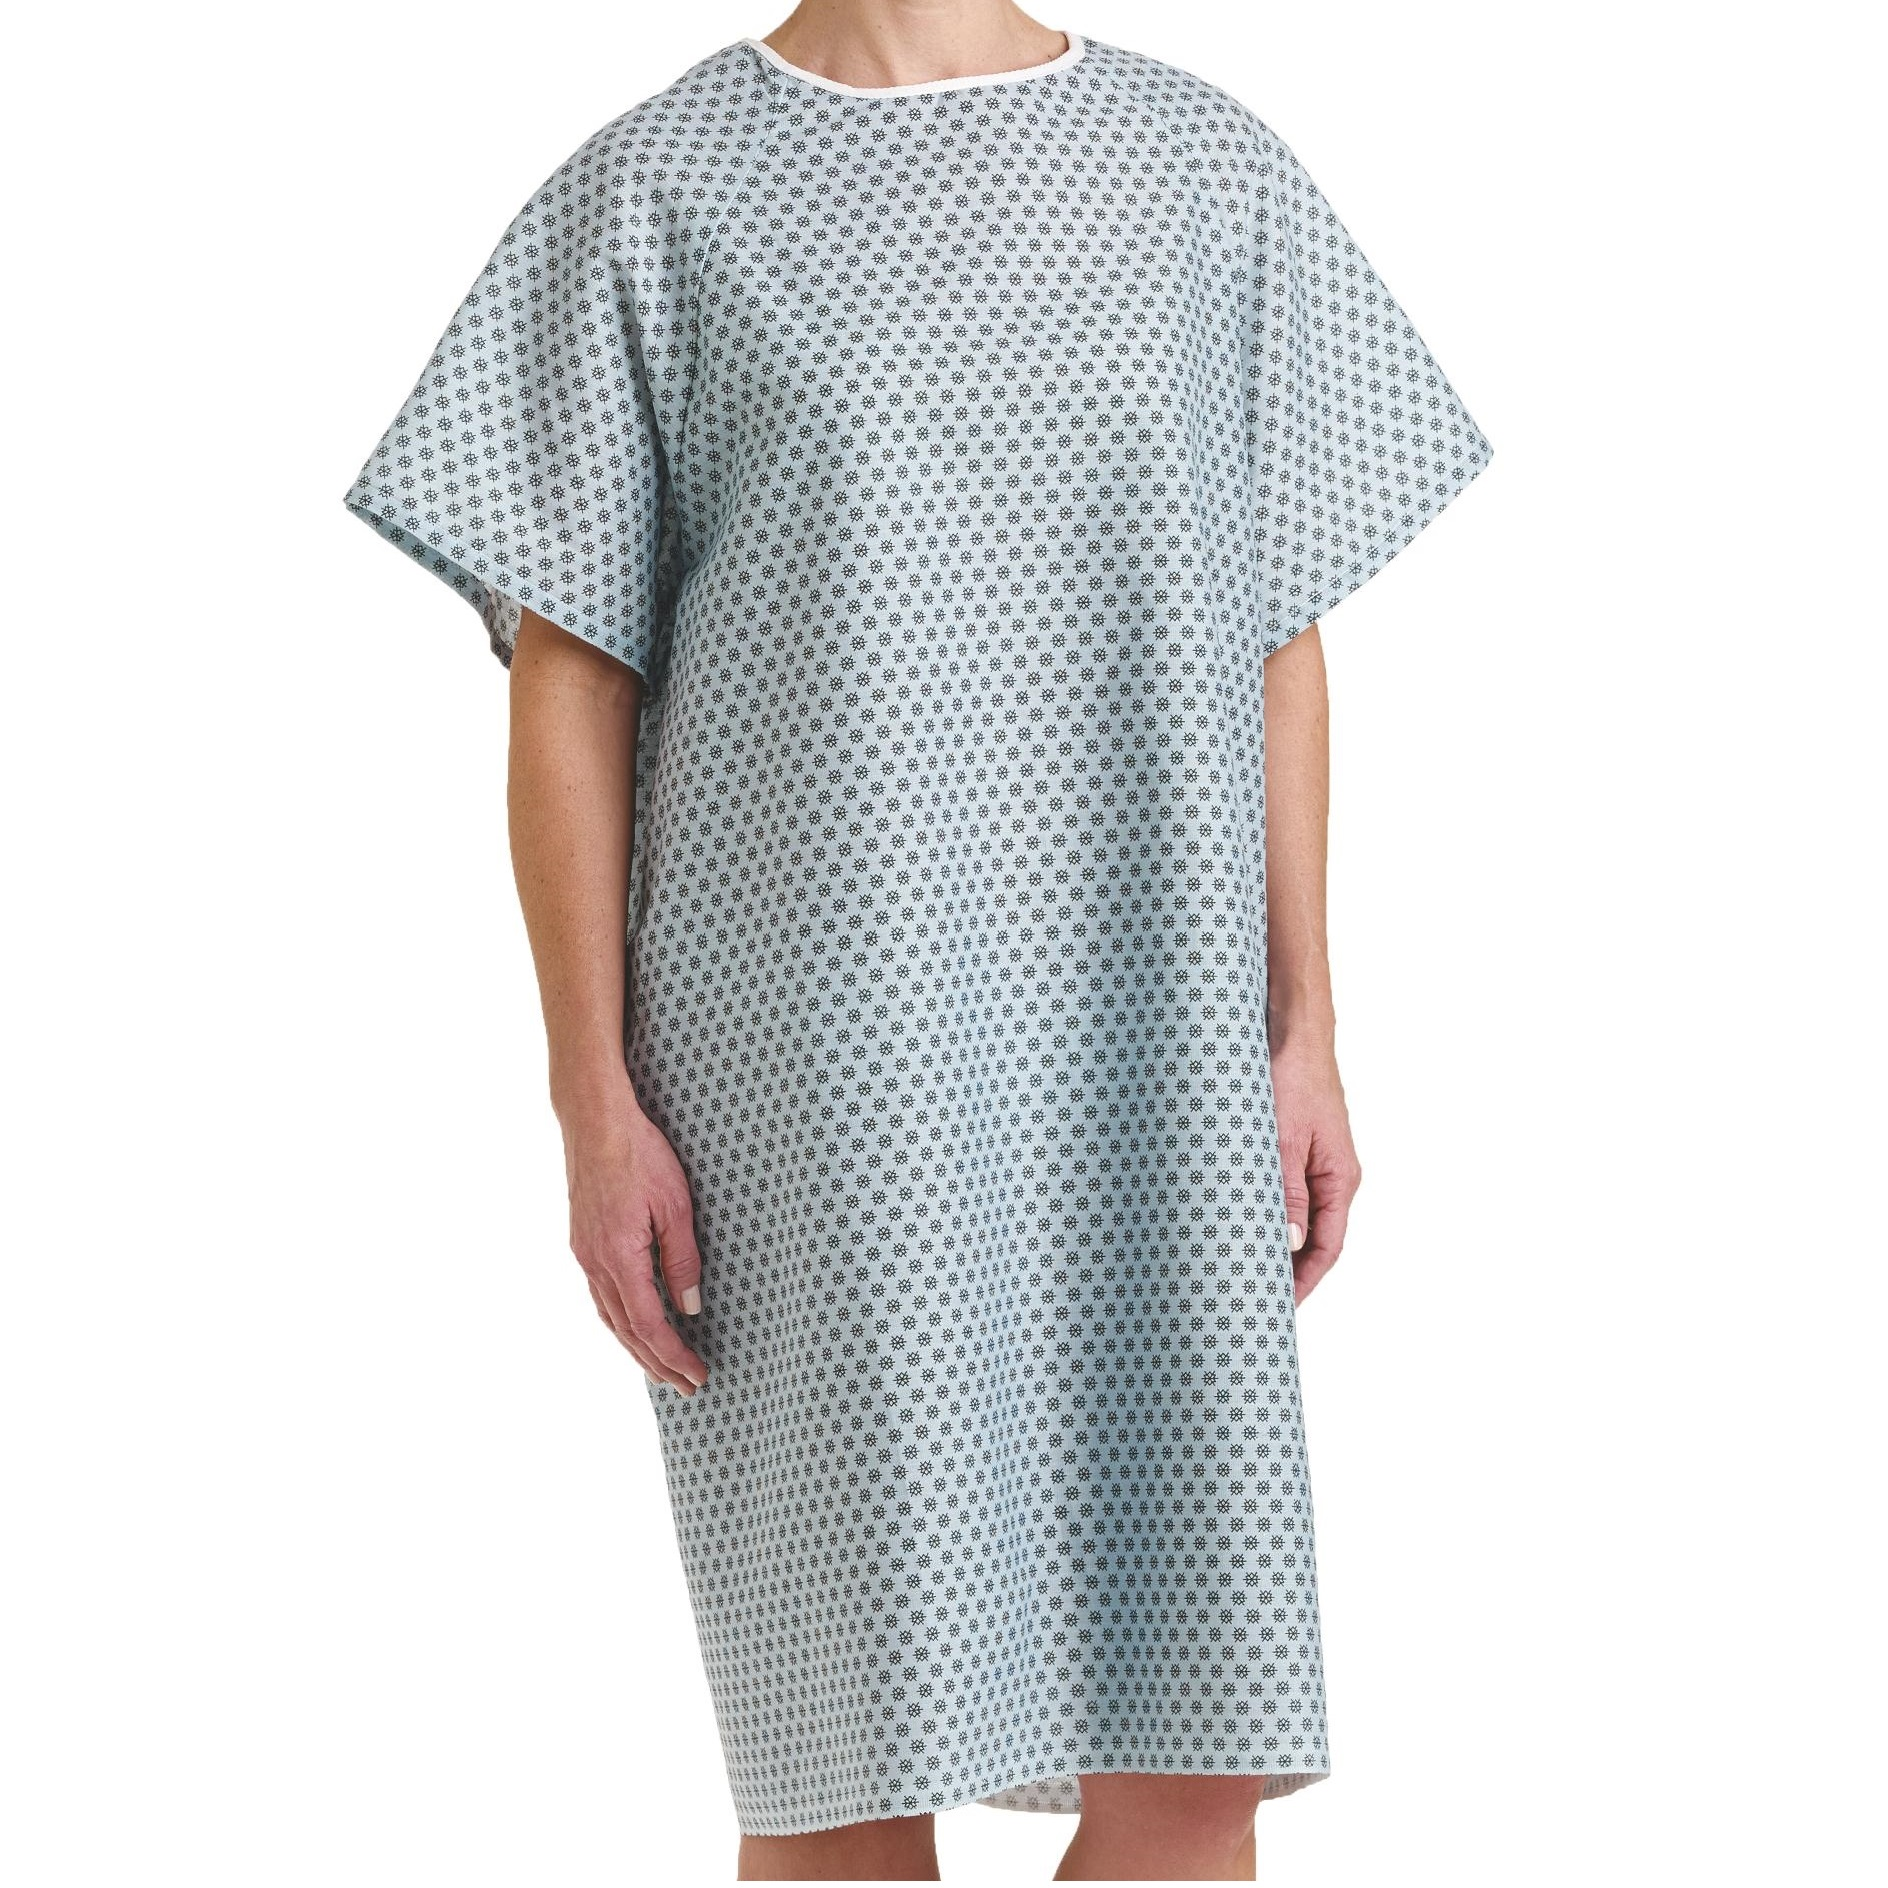 Hospital Patient Gowns | Hospital Gowns | Wholesale